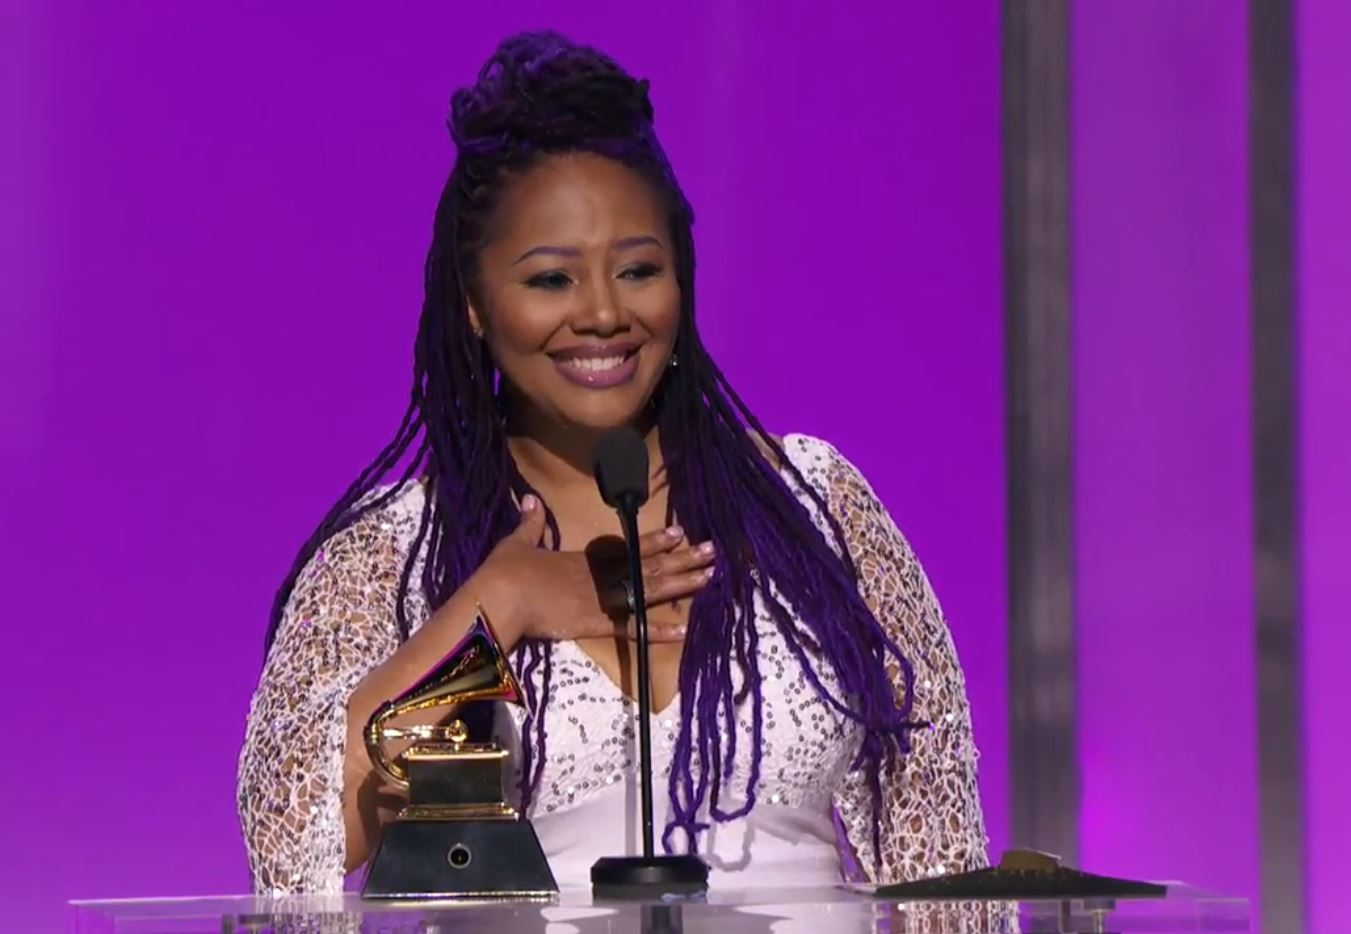 Lalah Hathaway 2016 Grammy Award acceptance speech -8 - Courtesy of ConnectingYOUto PR Firm